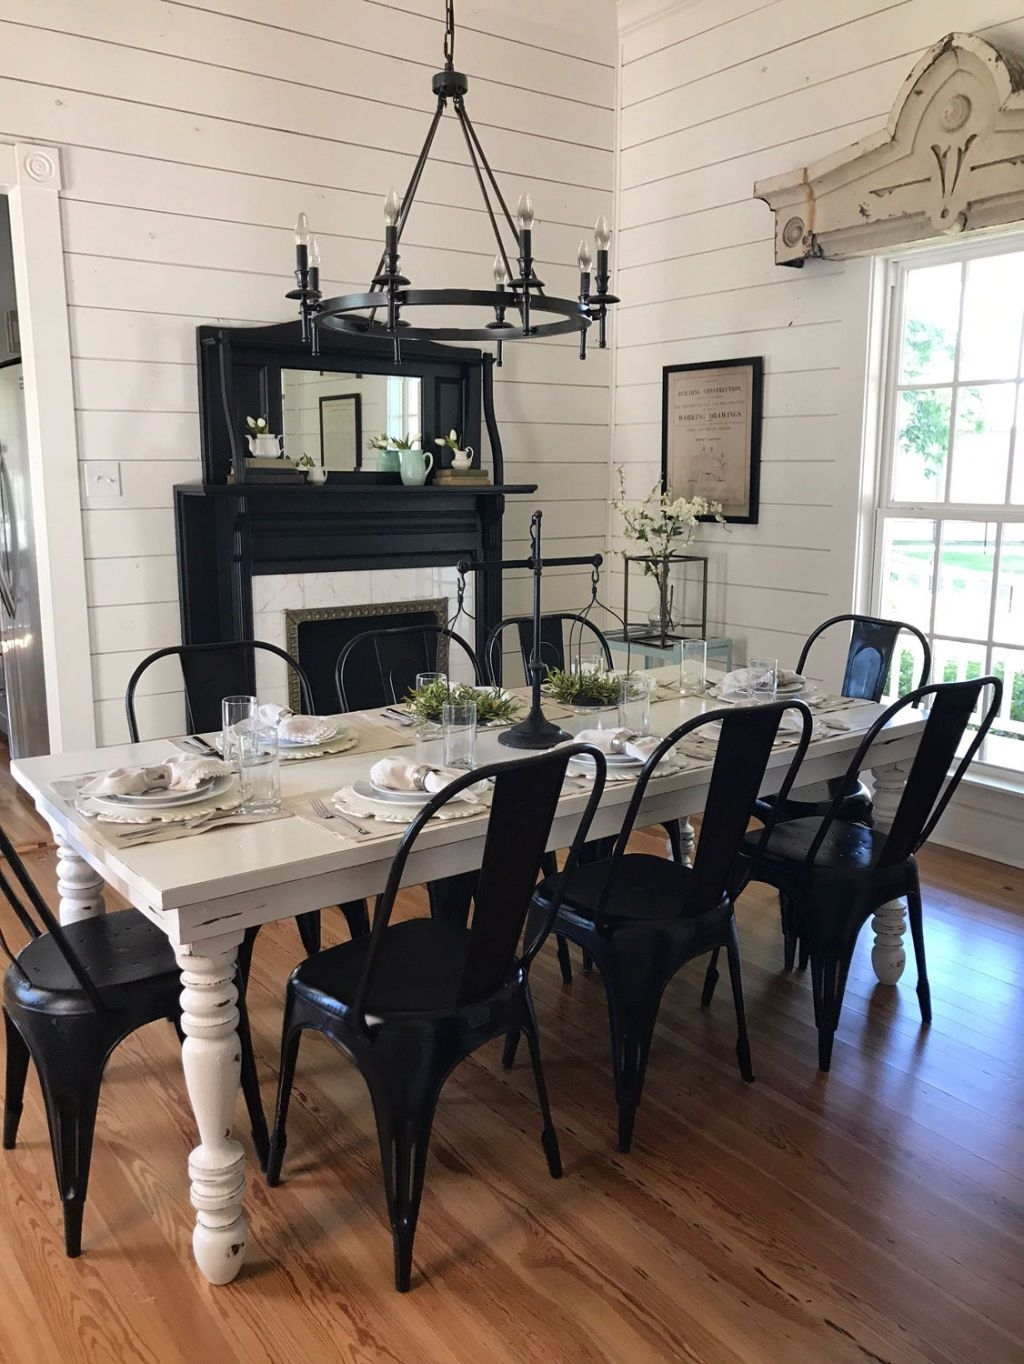 I Stayed At Chip And Joanna's B&b — Here's What It's Really Like Intended For Current Magnolia Home Prairie Dining Tables (Image 9 of 20)